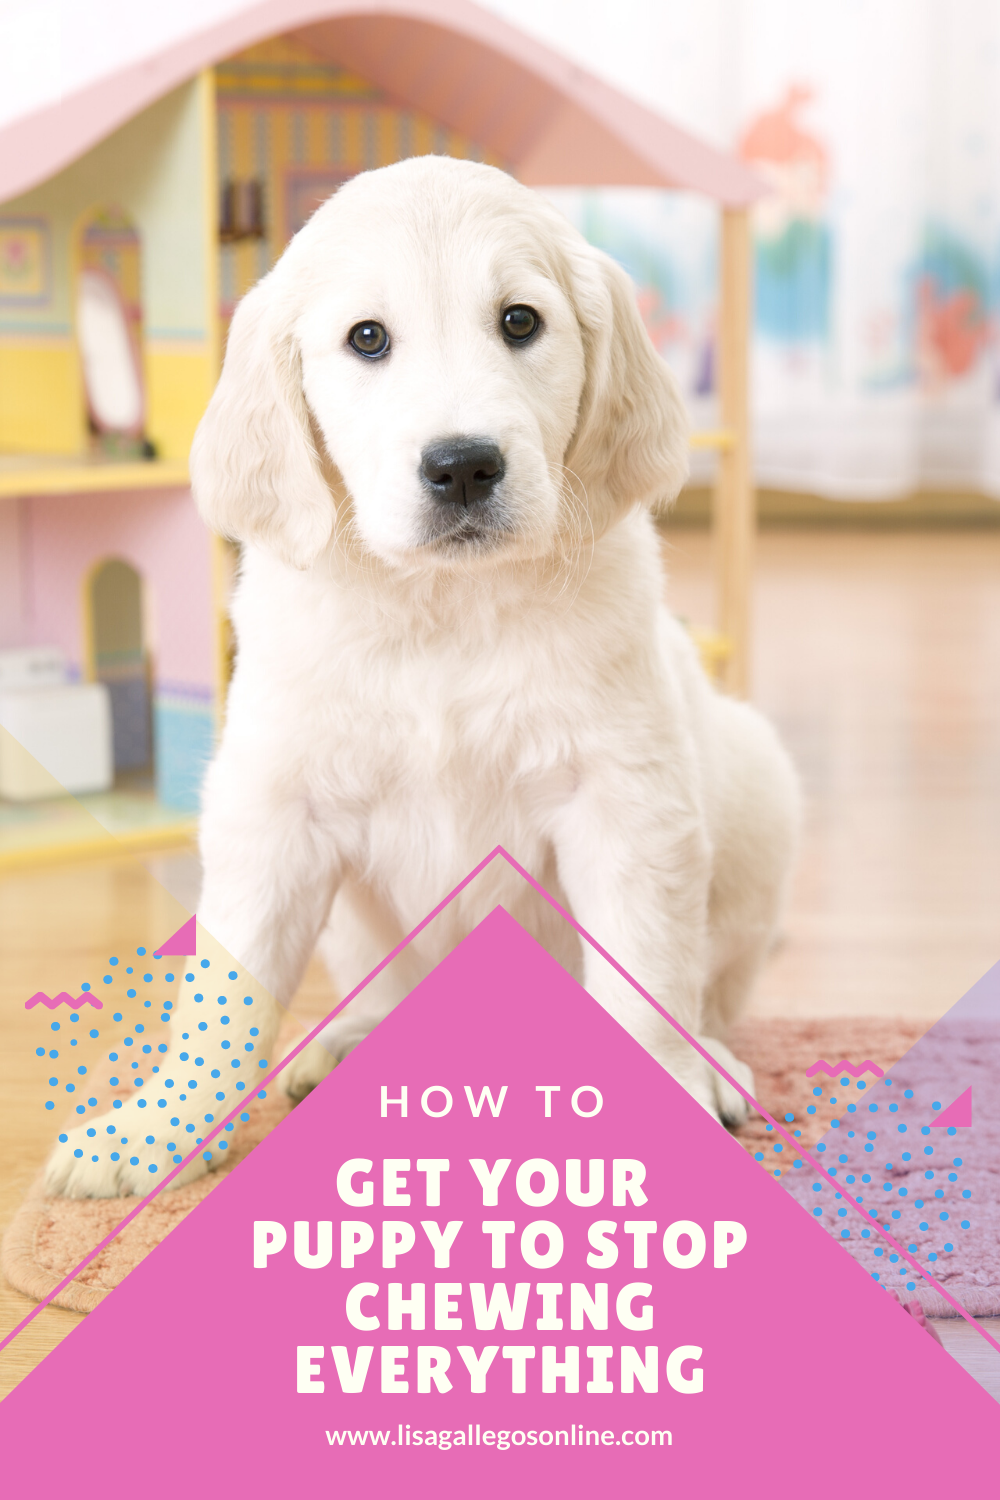 How To Get Your Puppy To Stop Chewing Everything In 2020 Puppy Training Puppies Dog Training Advice